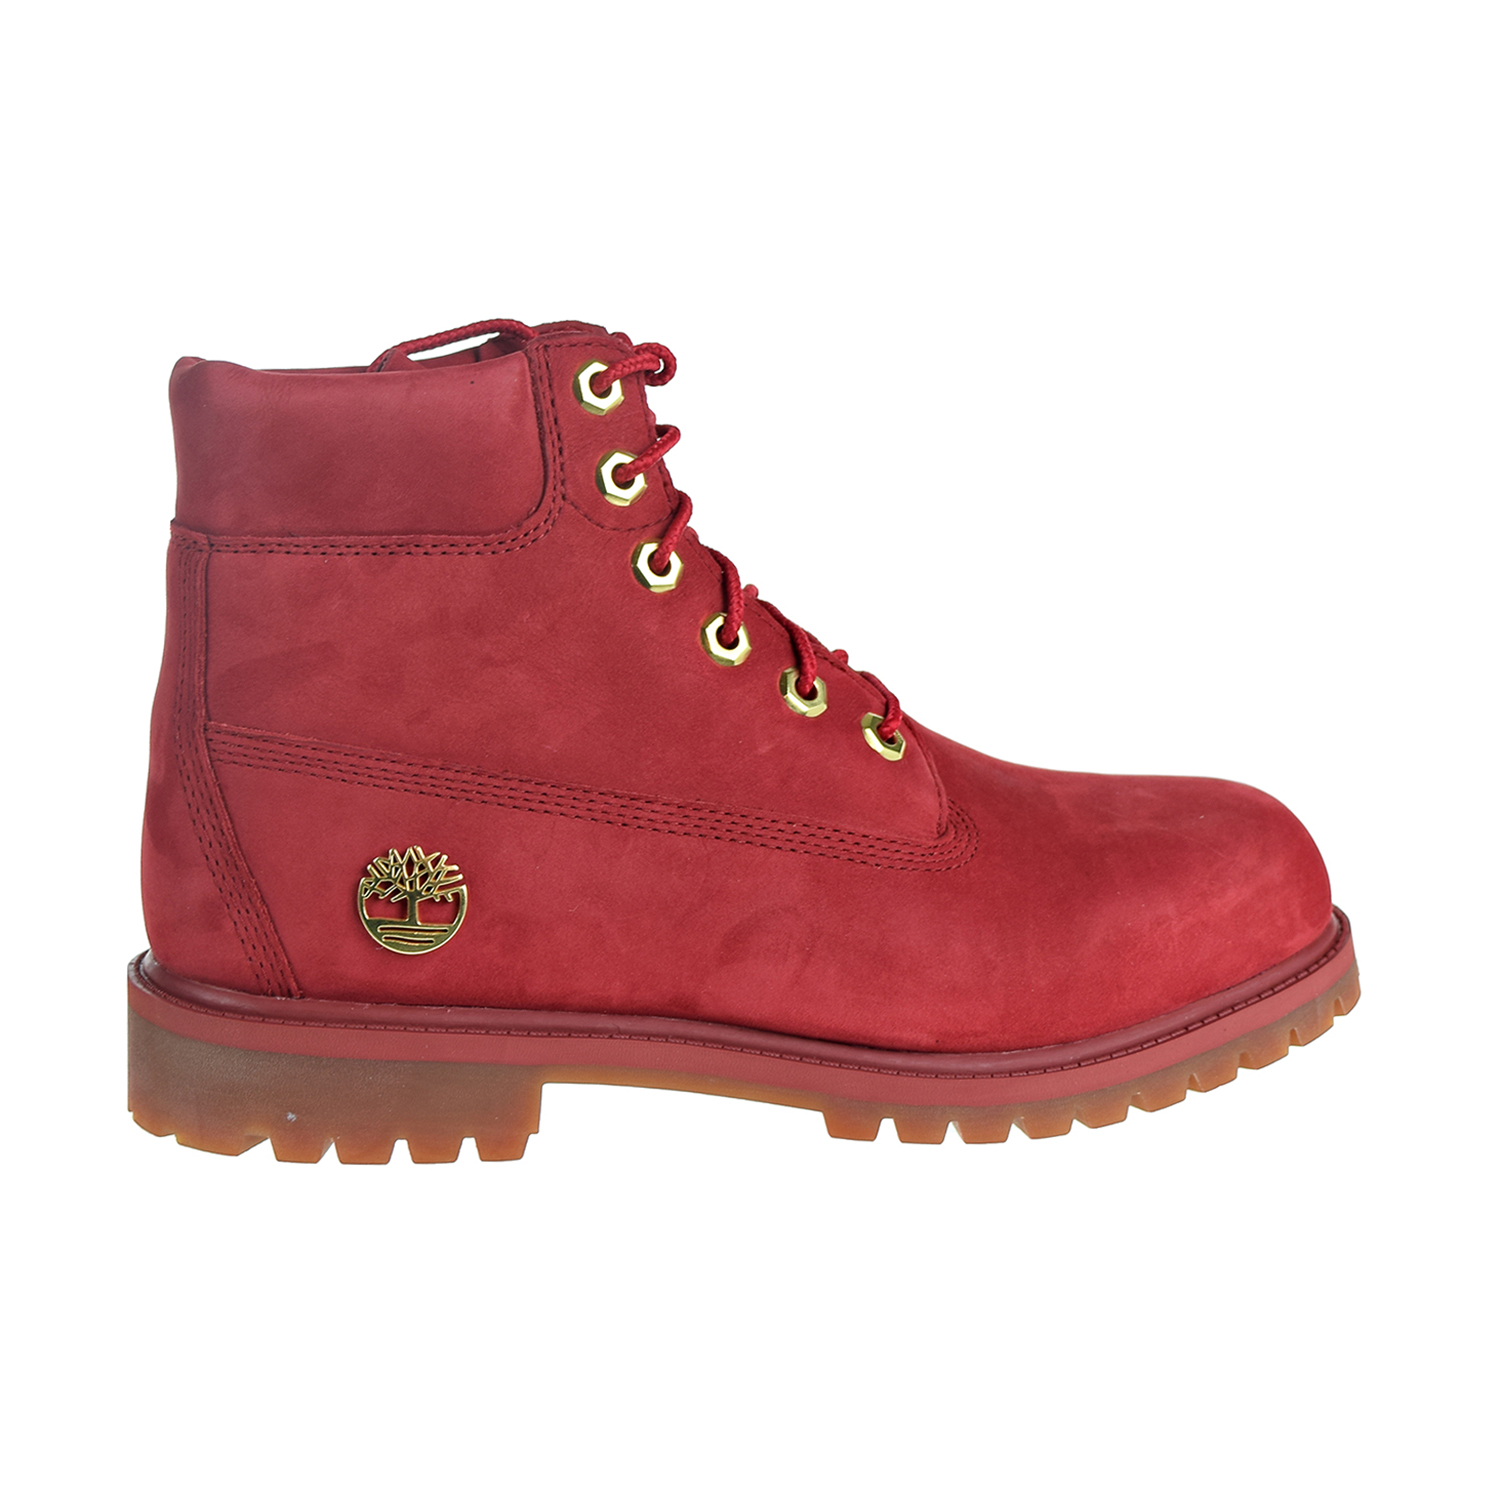 bc5692a9510 Details about Timberland 6